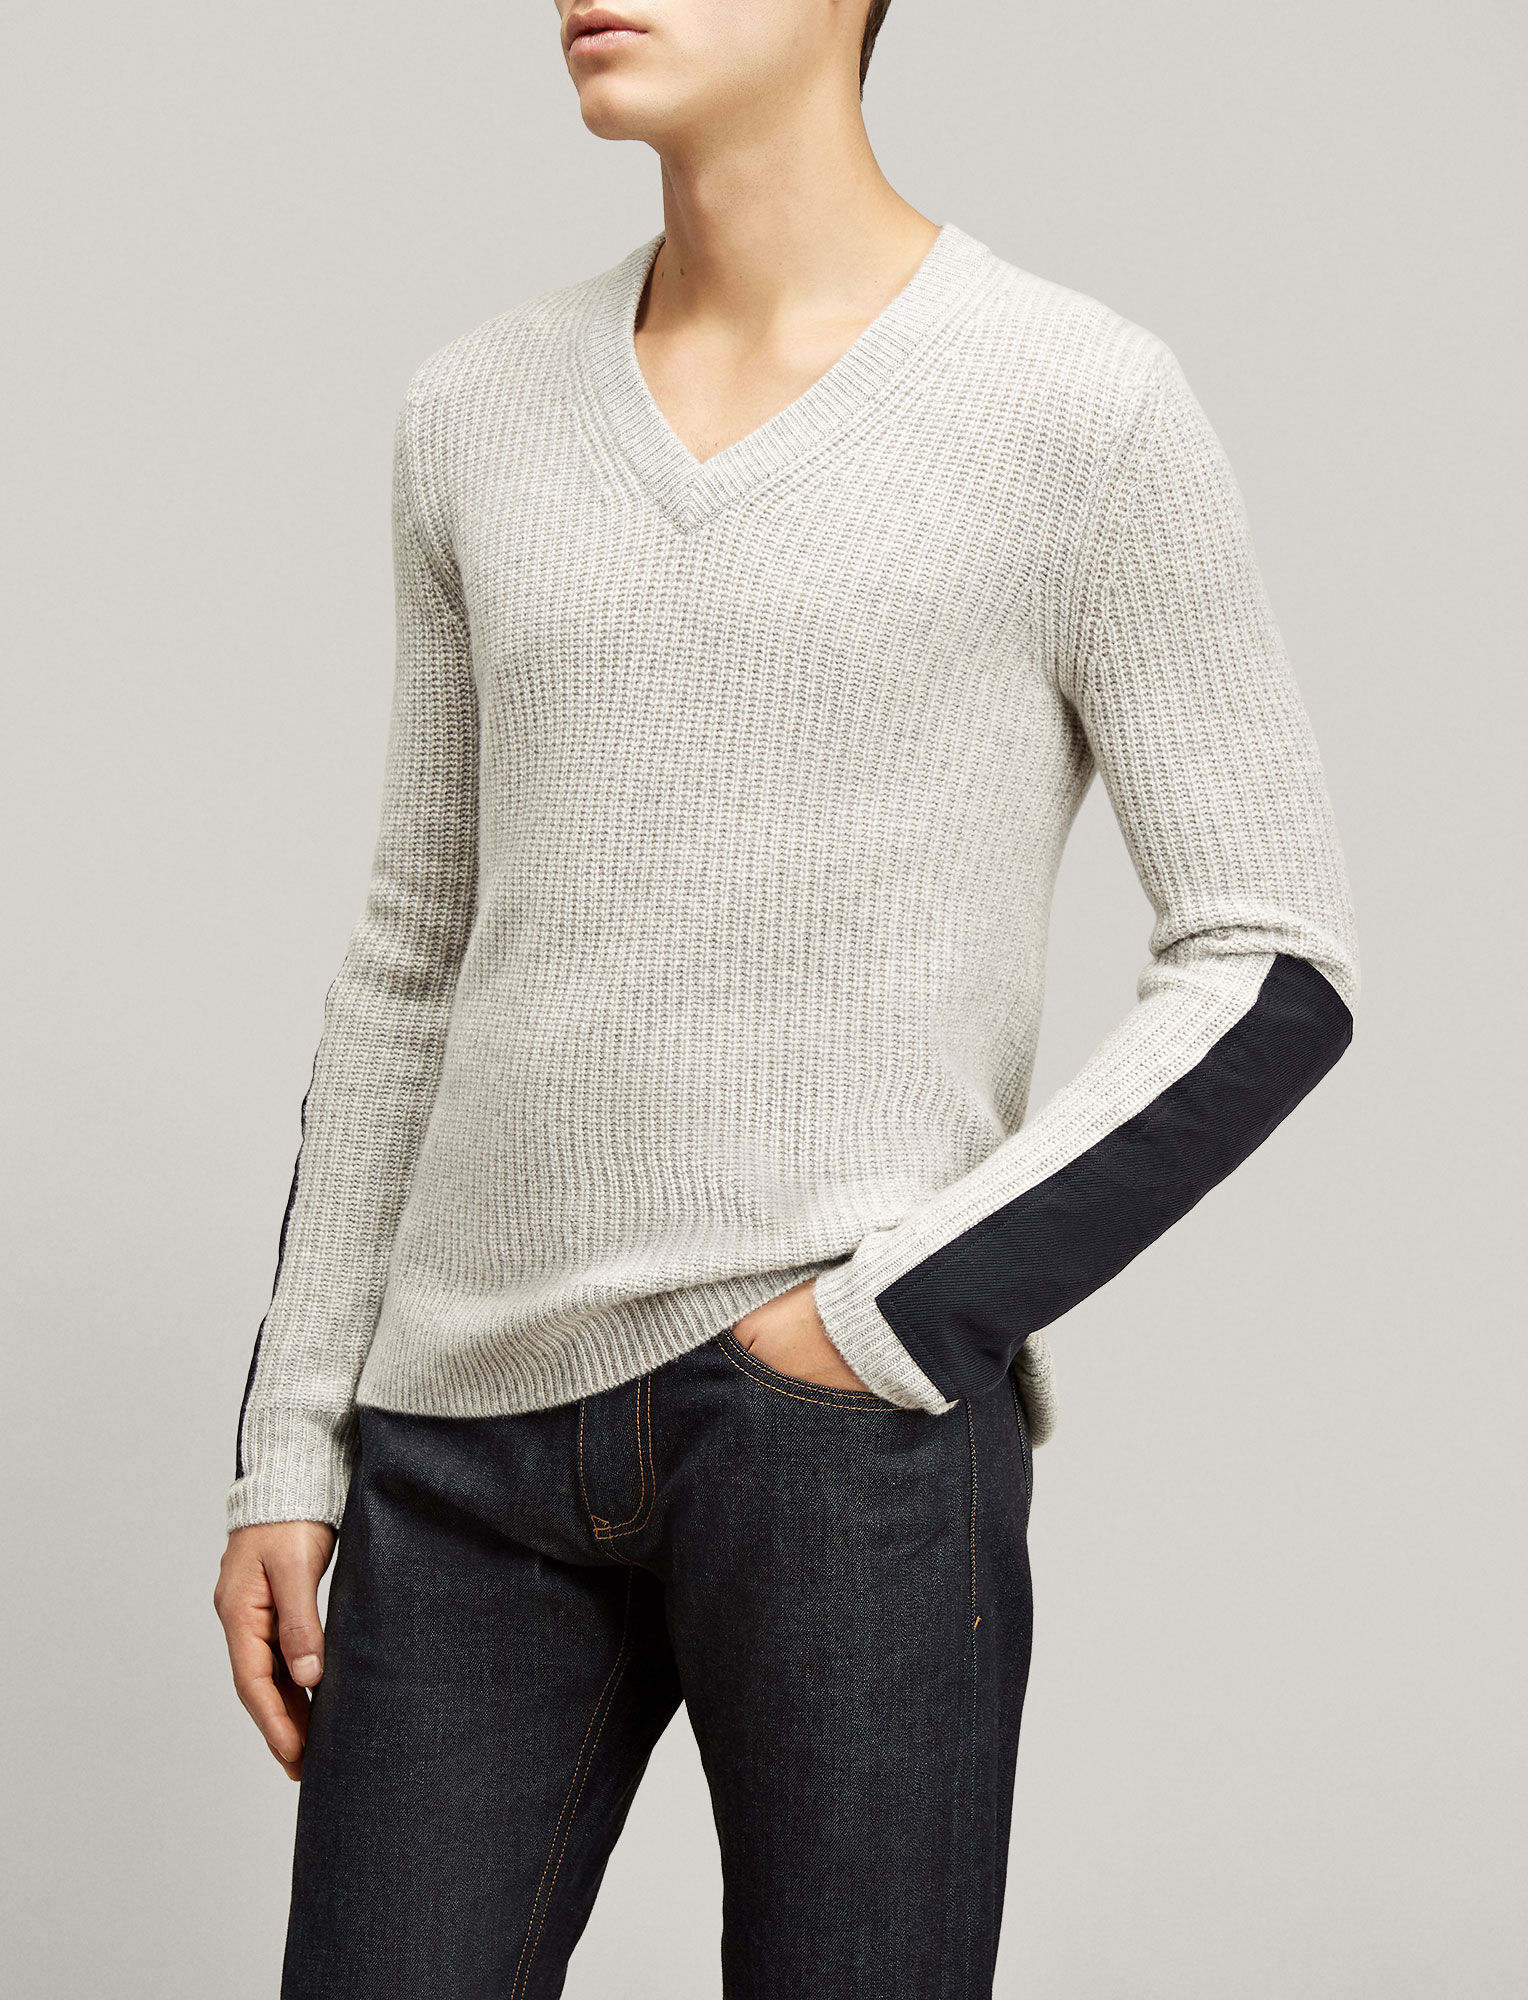 Joseph, Military Cashmere V Neck Sweater, in GREY CHINE